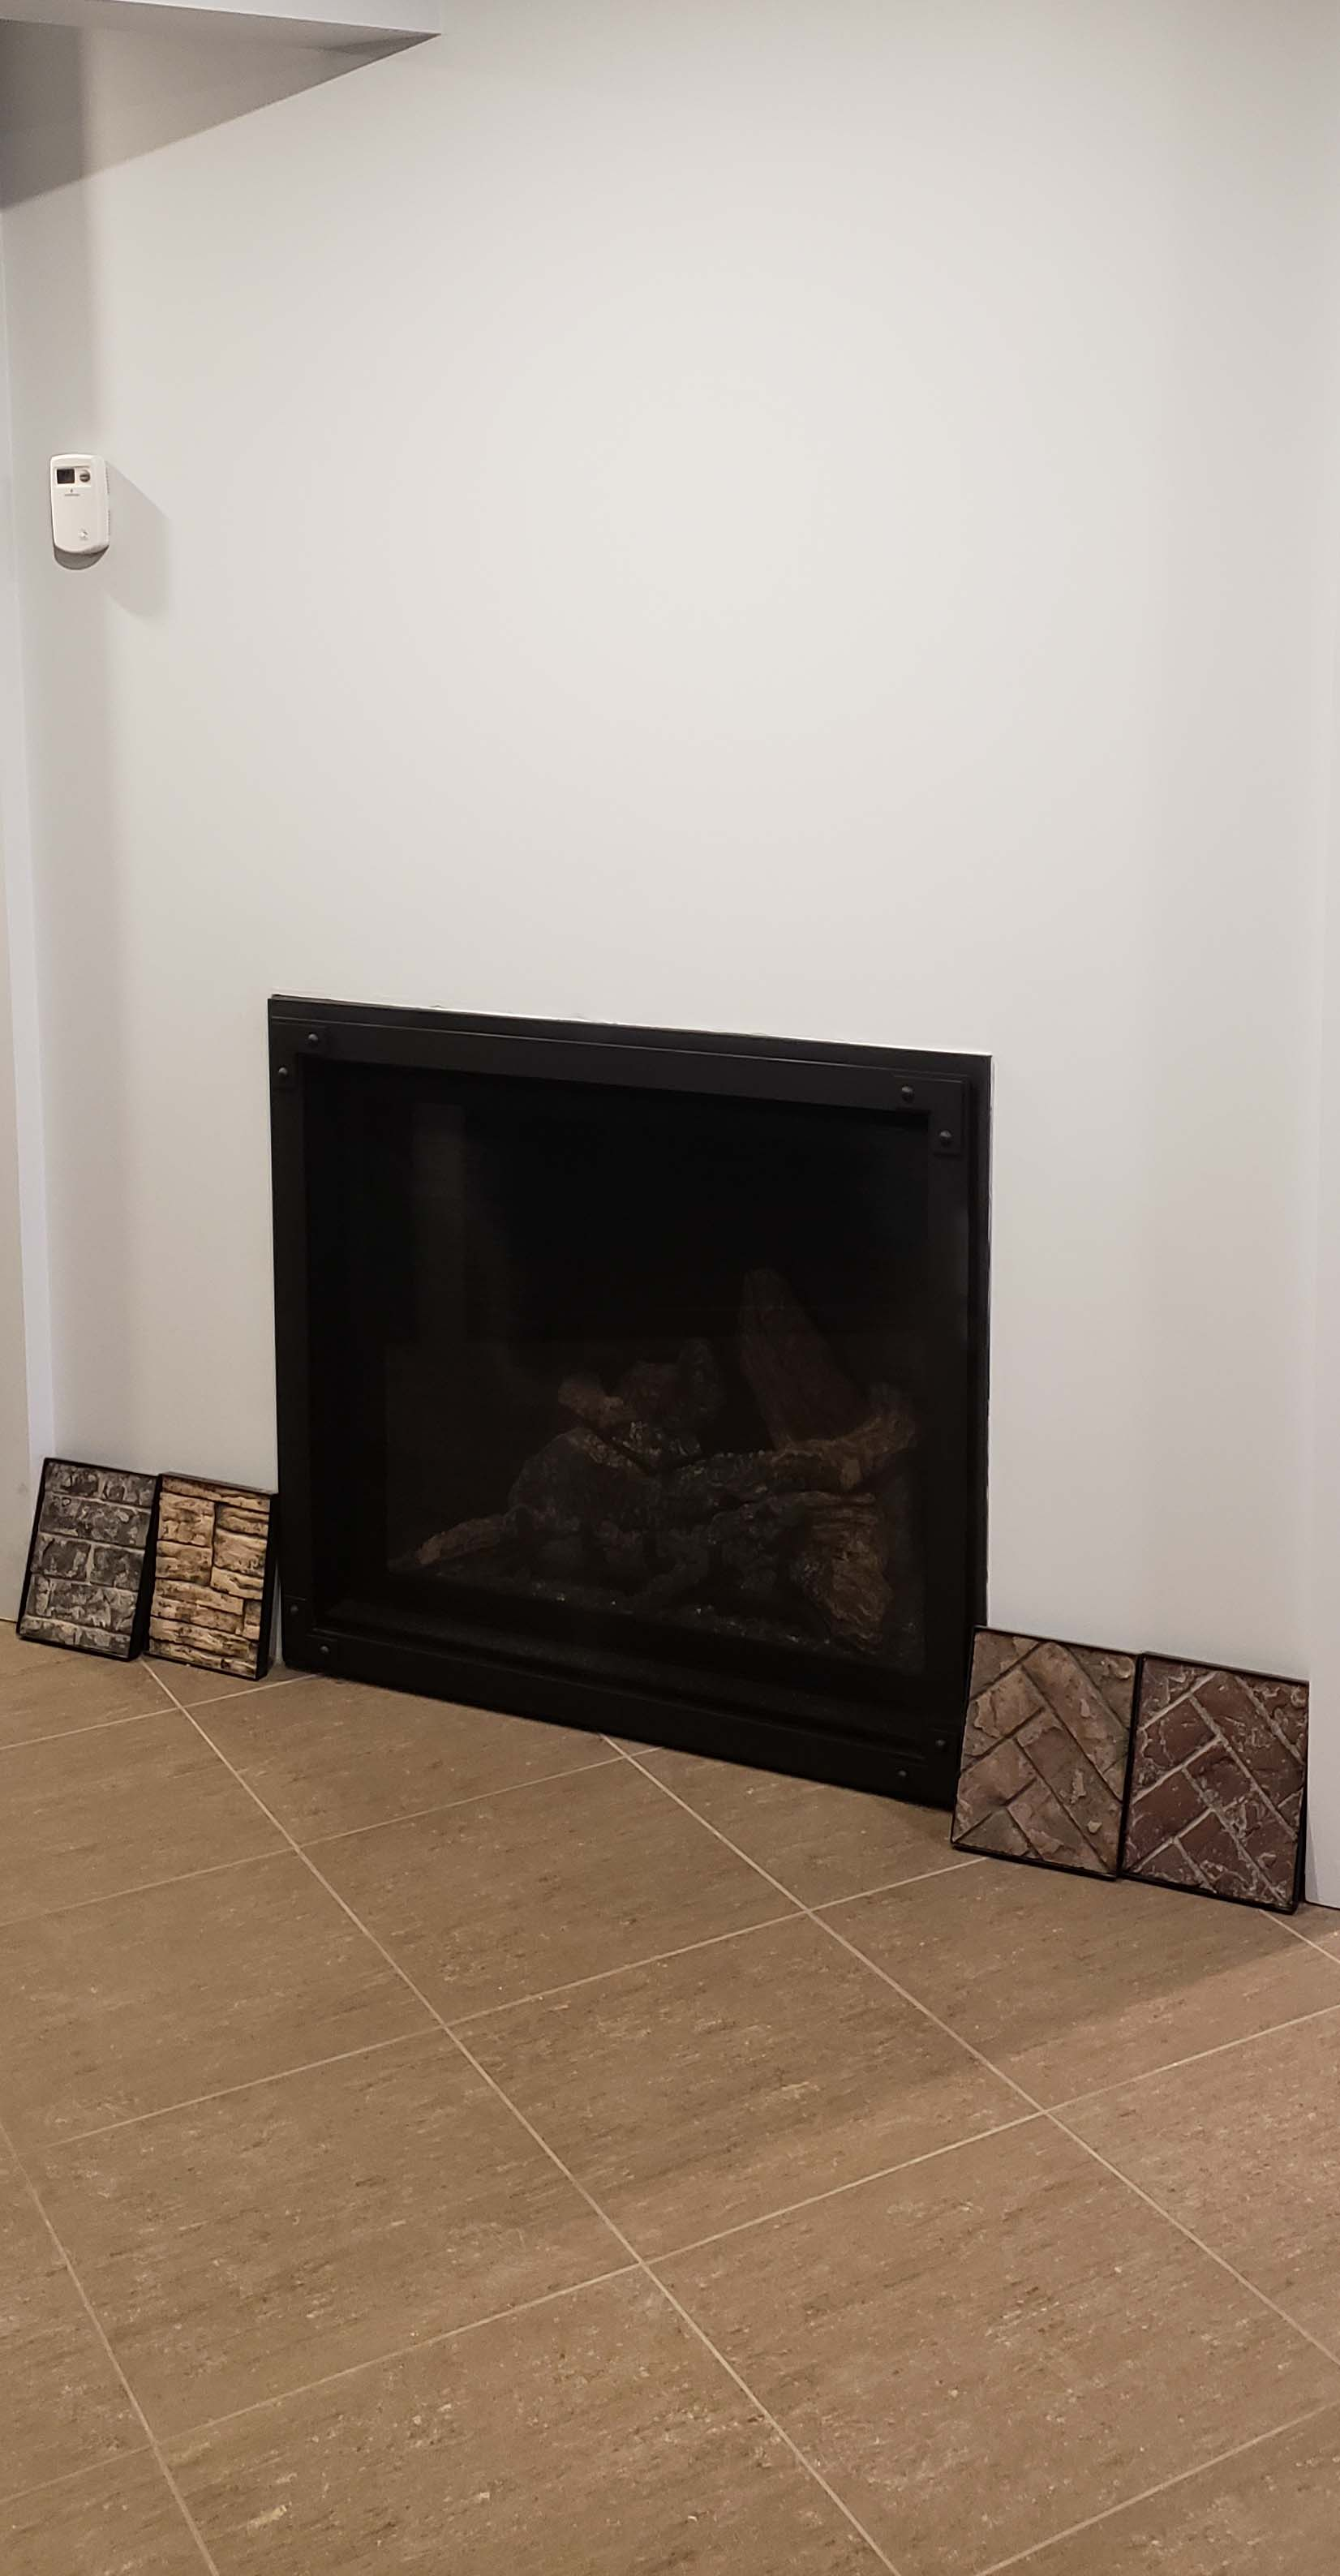 Admirable Fireplace Fx Fireplaces Barbqueues And More Home Interior And Landscaping Ologienasavecom